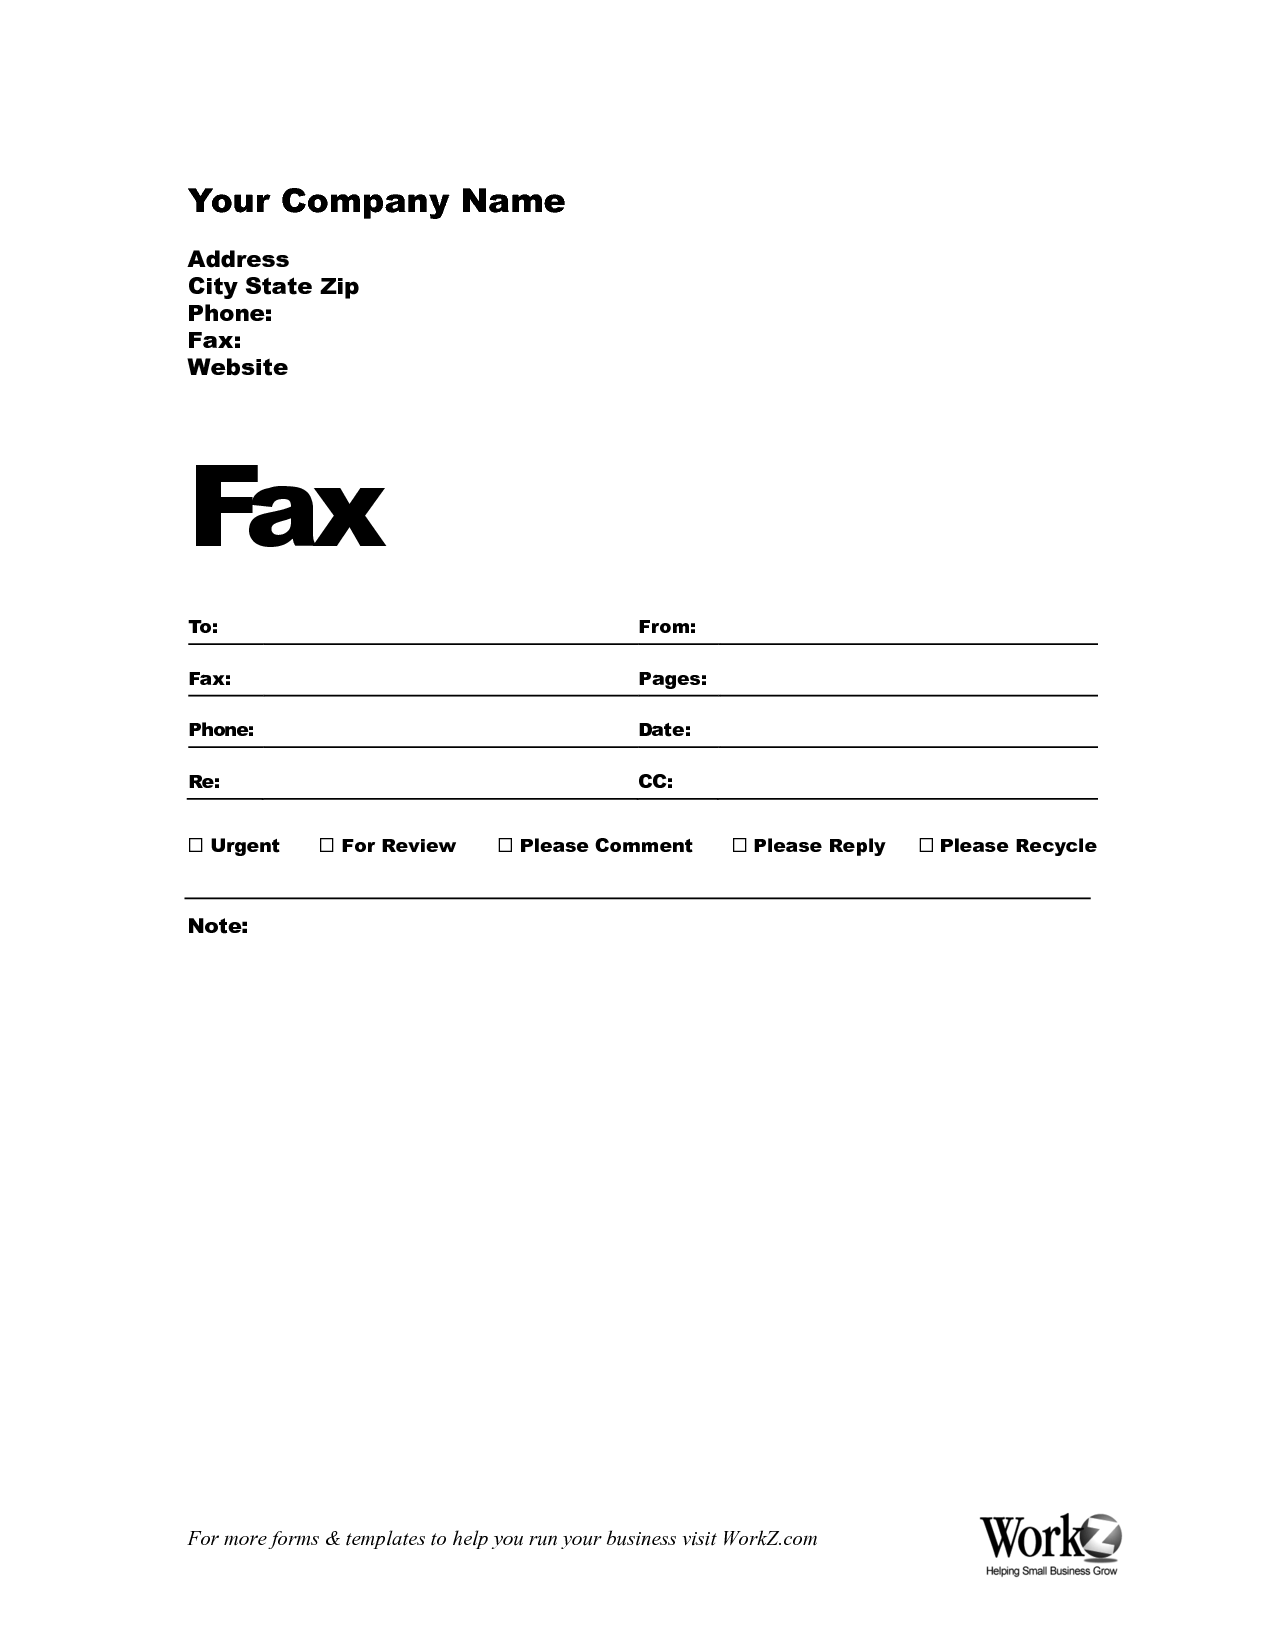 Template   Hillaryrain.co   Best Resumes And Templates For Your ...  Free Fax Templates